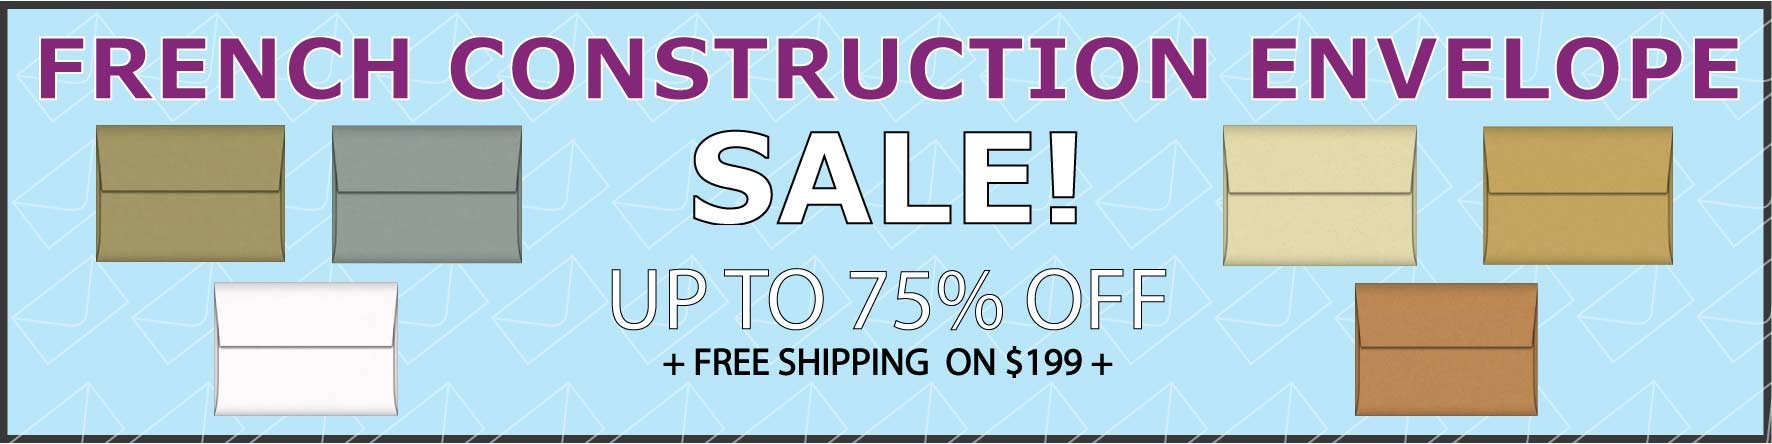 French Construction Envelope Sale